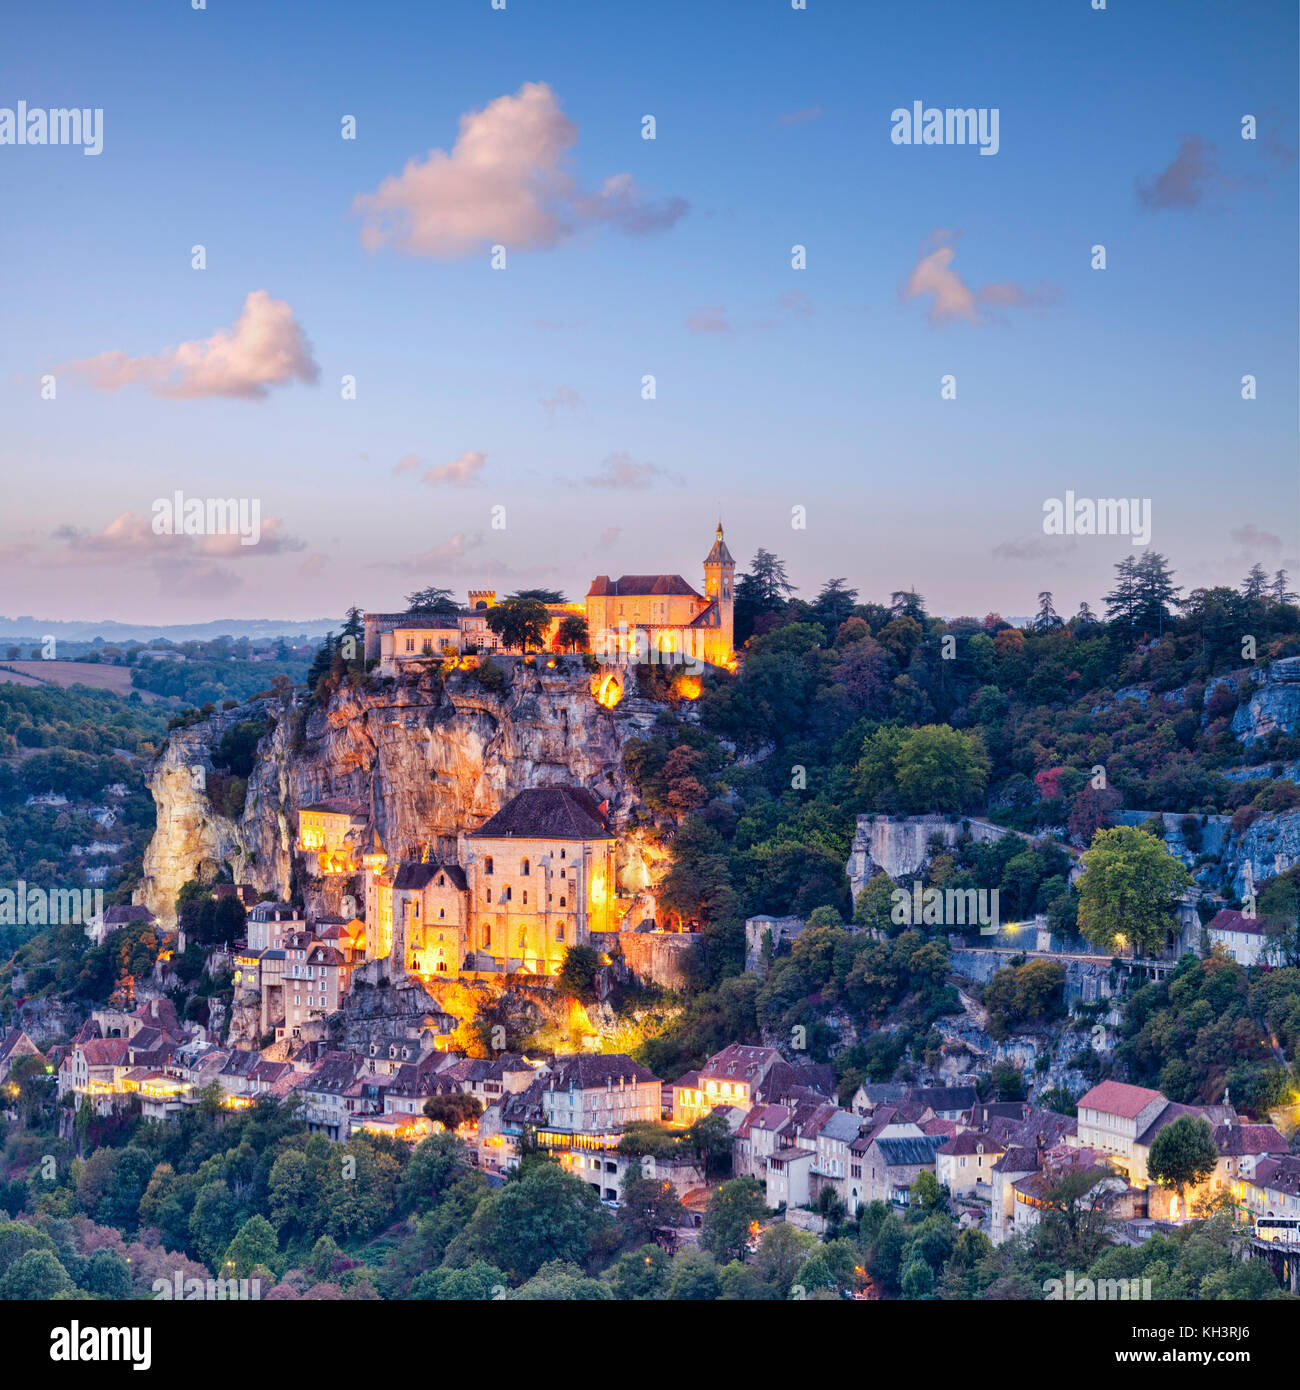 Twilight at the medieval town of Rocamadour, in the Dordogne Valley, Midi-Pyrenees, France. - Stock Image